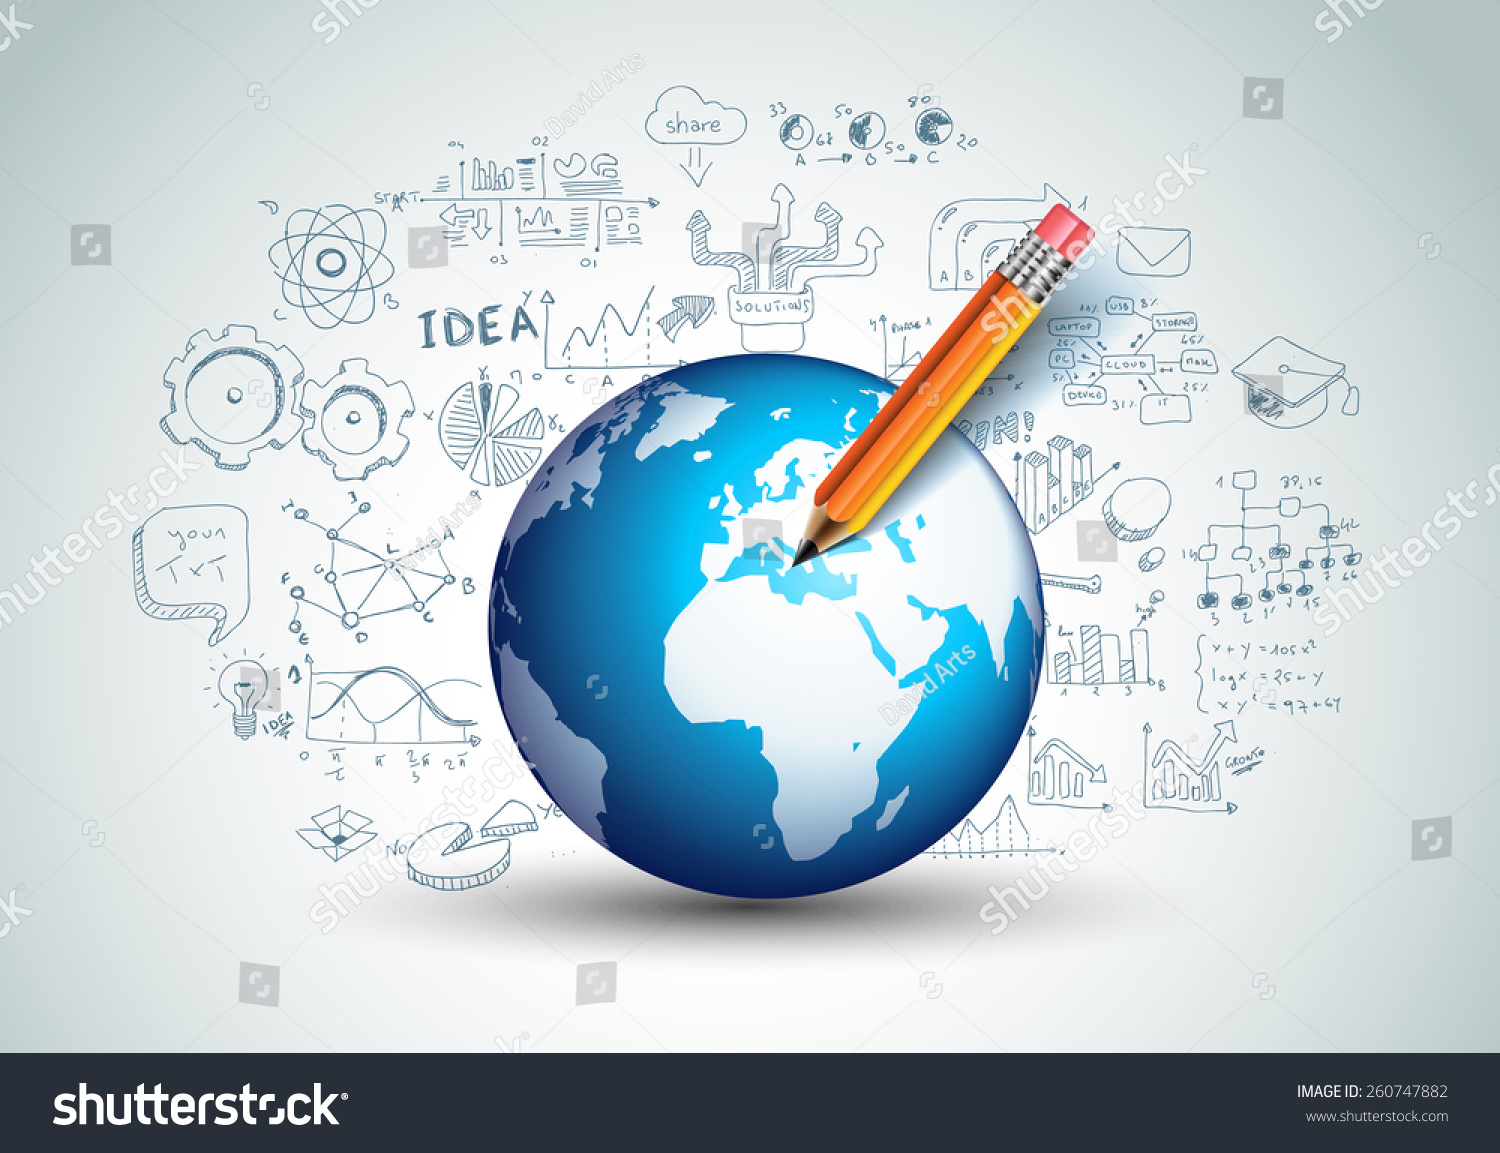 Idea Concept Layout Brainstorming Infographic Background Stock ...